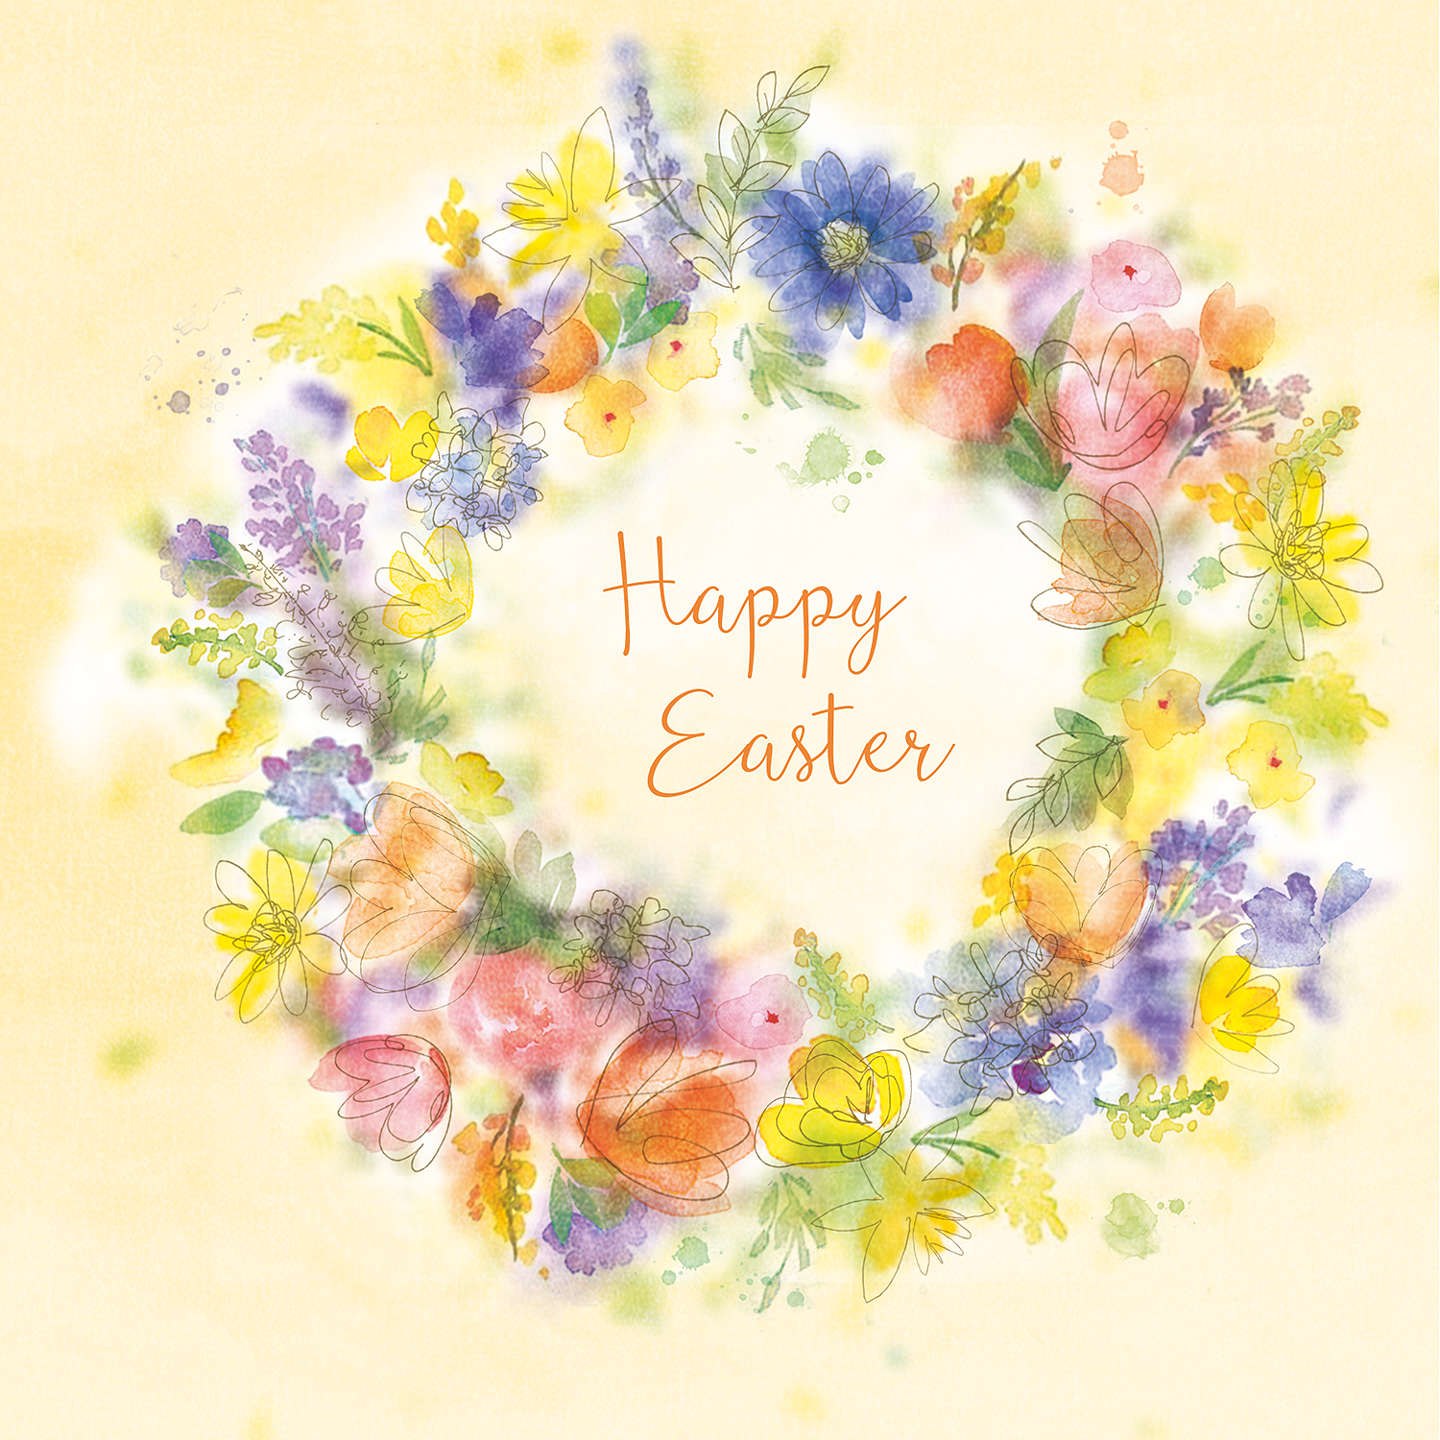 Saffron cards and gifts easter wreath greeting card at john lewis buysaffron cards and gifts easter wreath greeting card online at johnlewis negle Choice Image